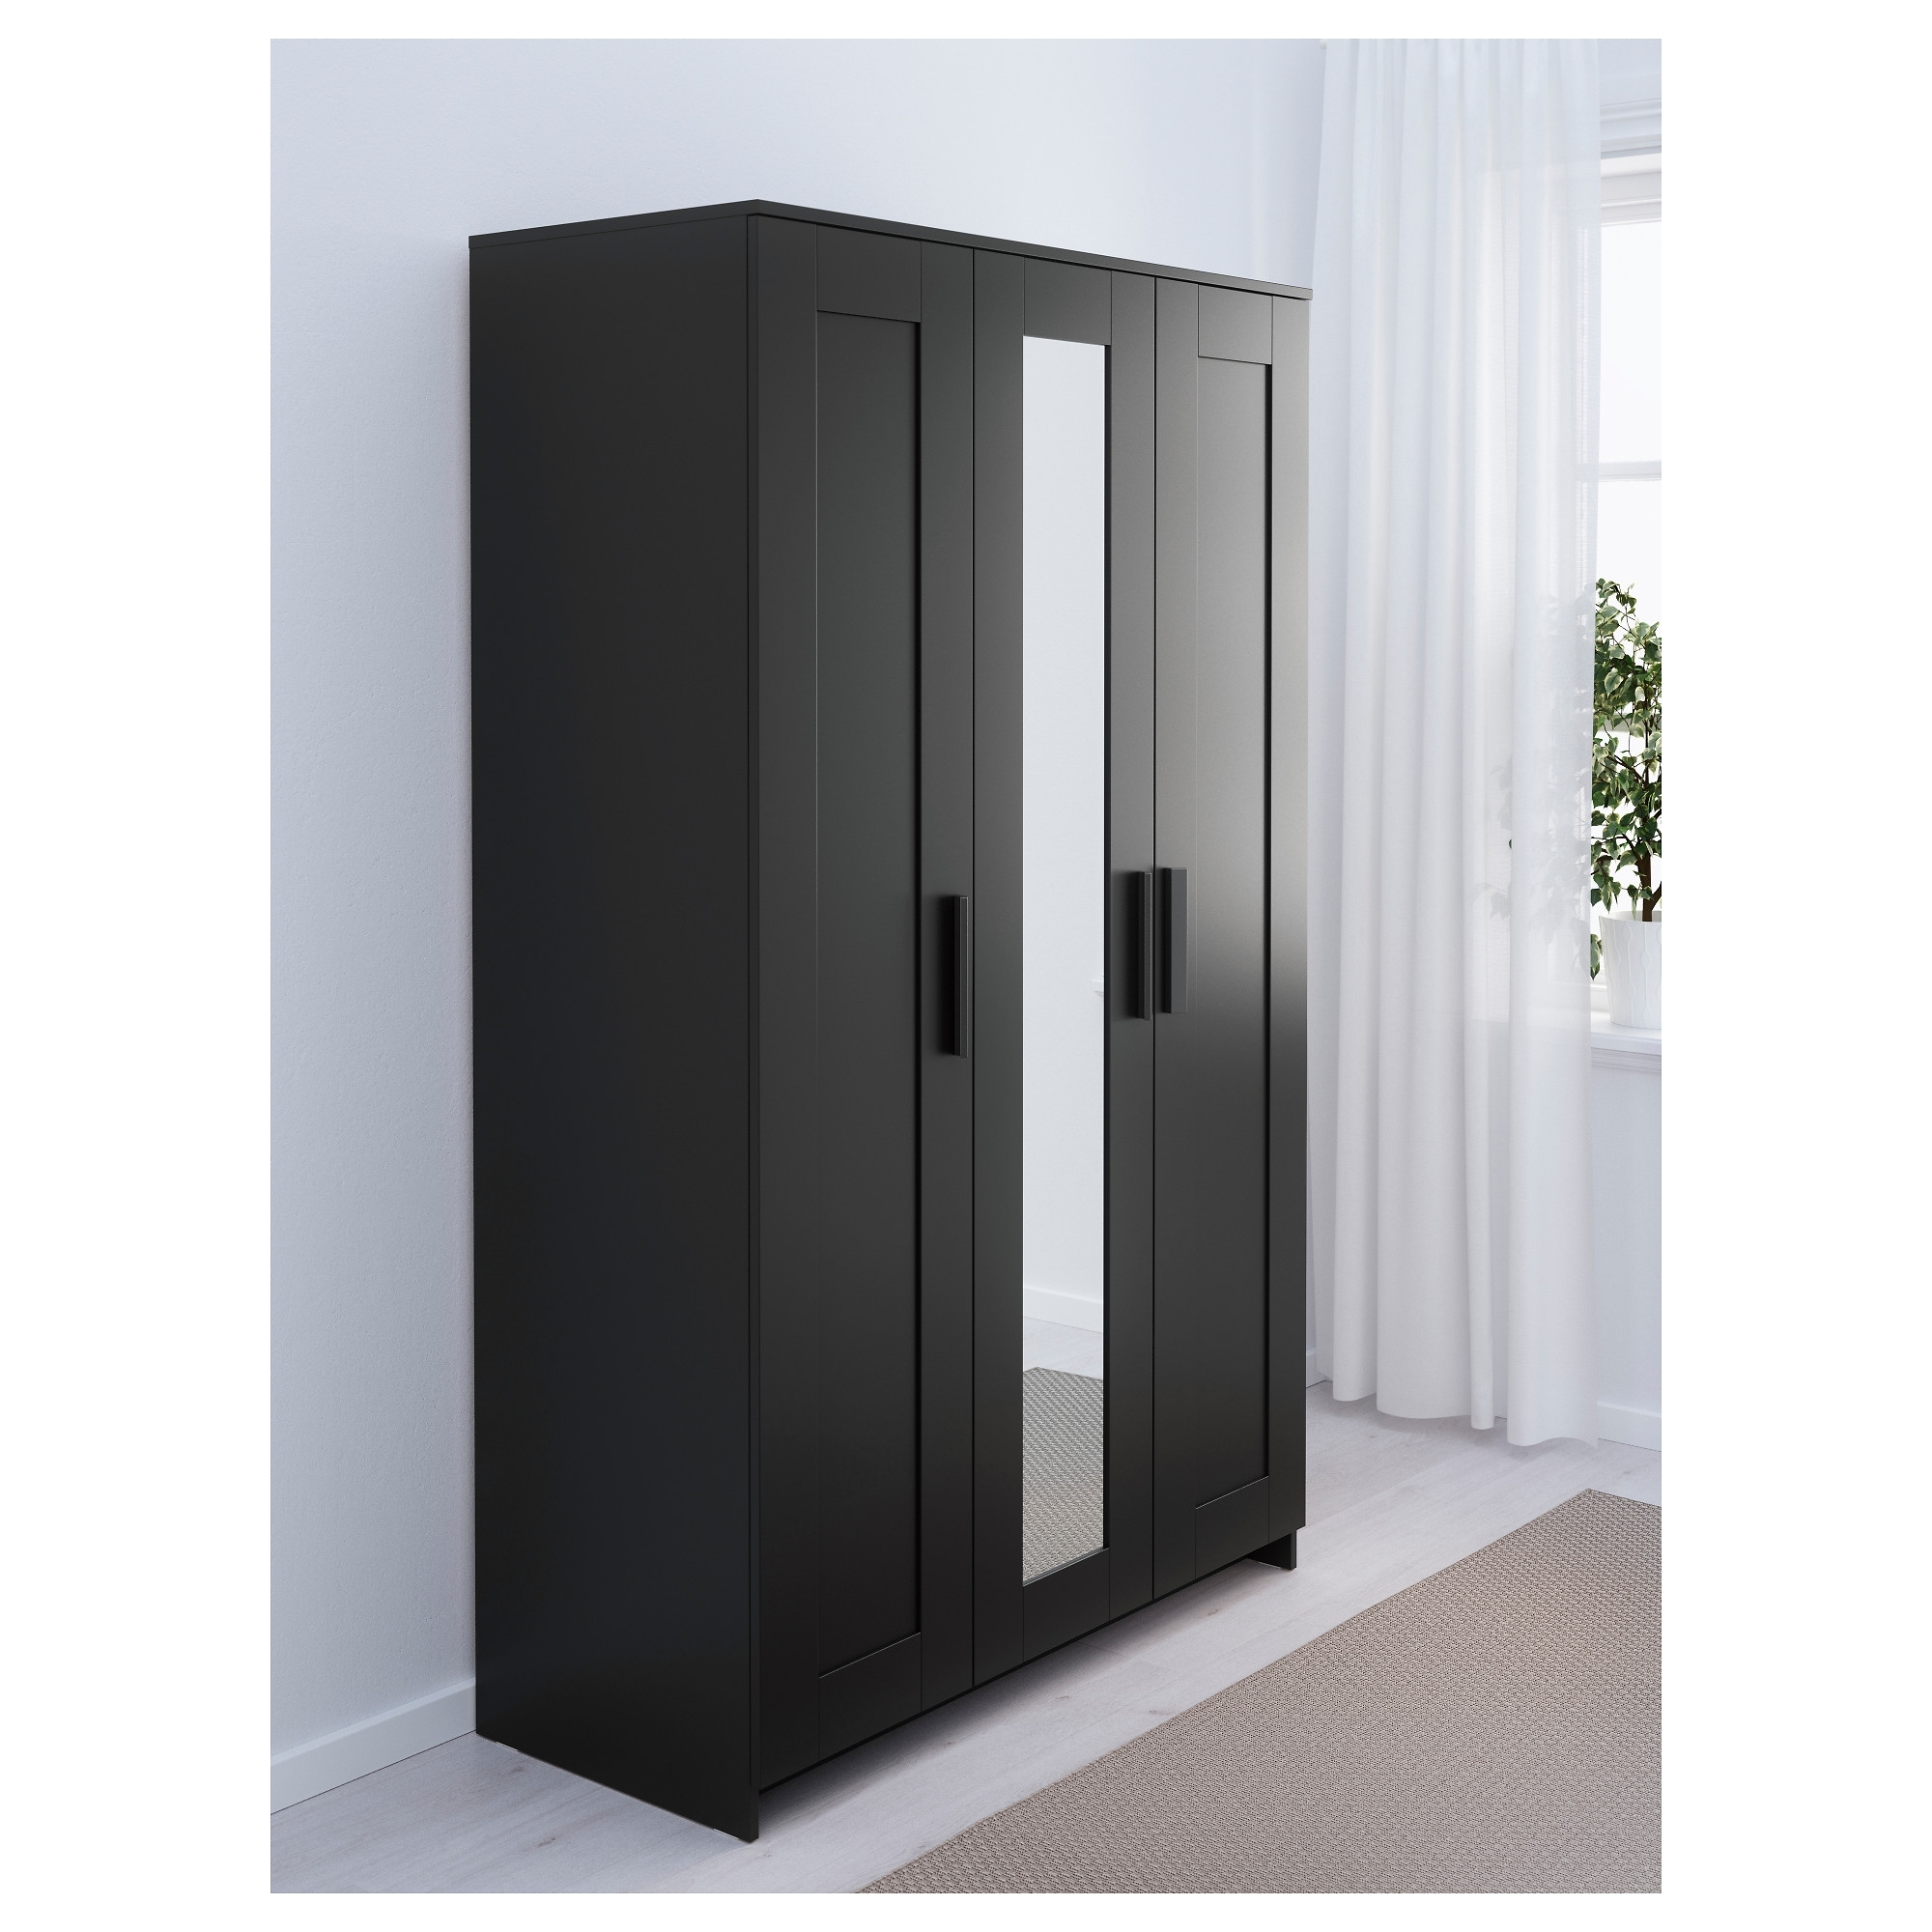 Three Door Wardrobes With Mirror Within 2018 Brimnes Wardrobe With 3 Doors – White – Ikea (View 2 of 15)